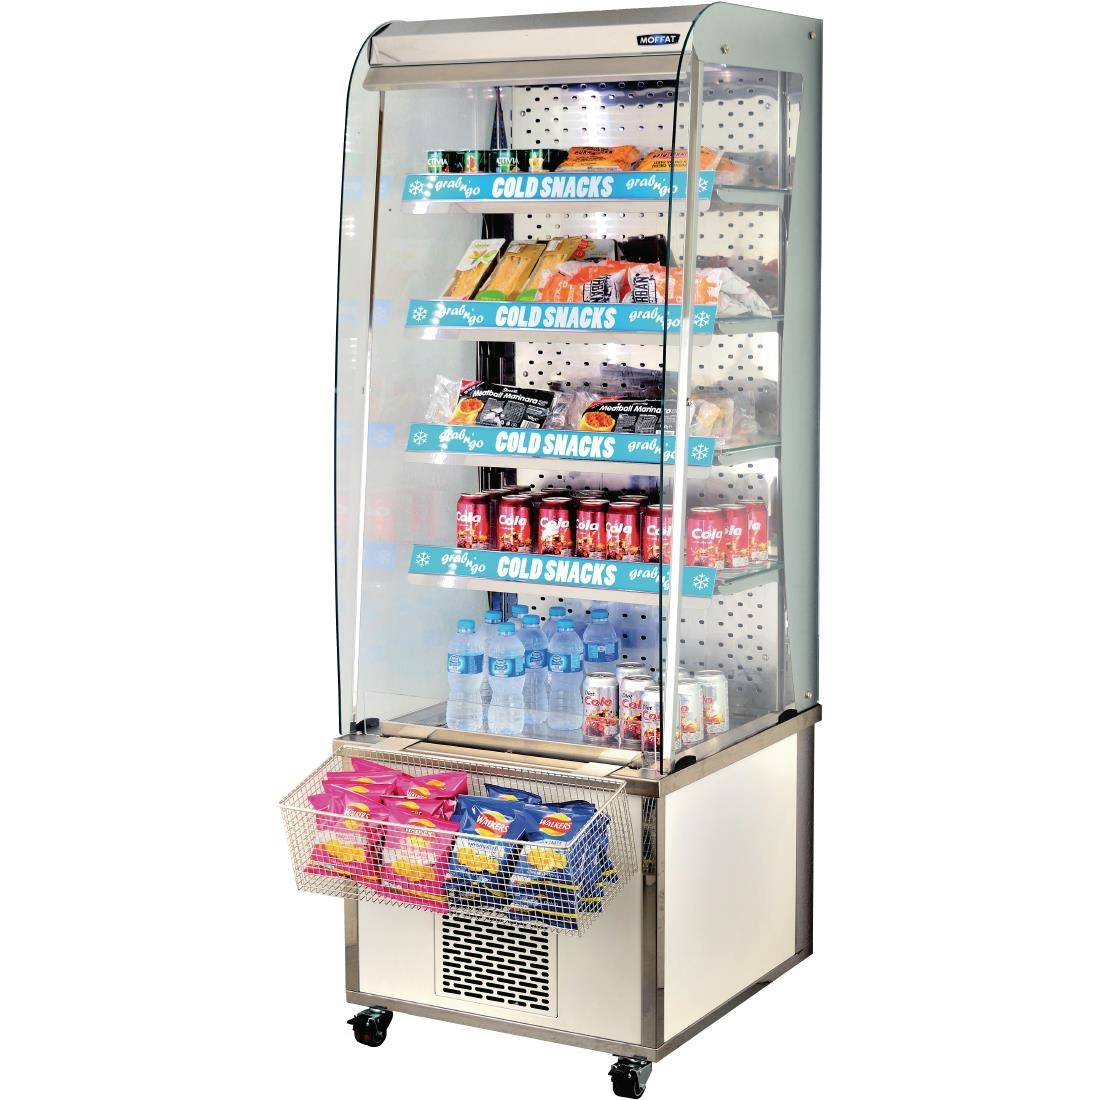 Image of Moffat Chilled Food Display Multideck Merchandiser MC1